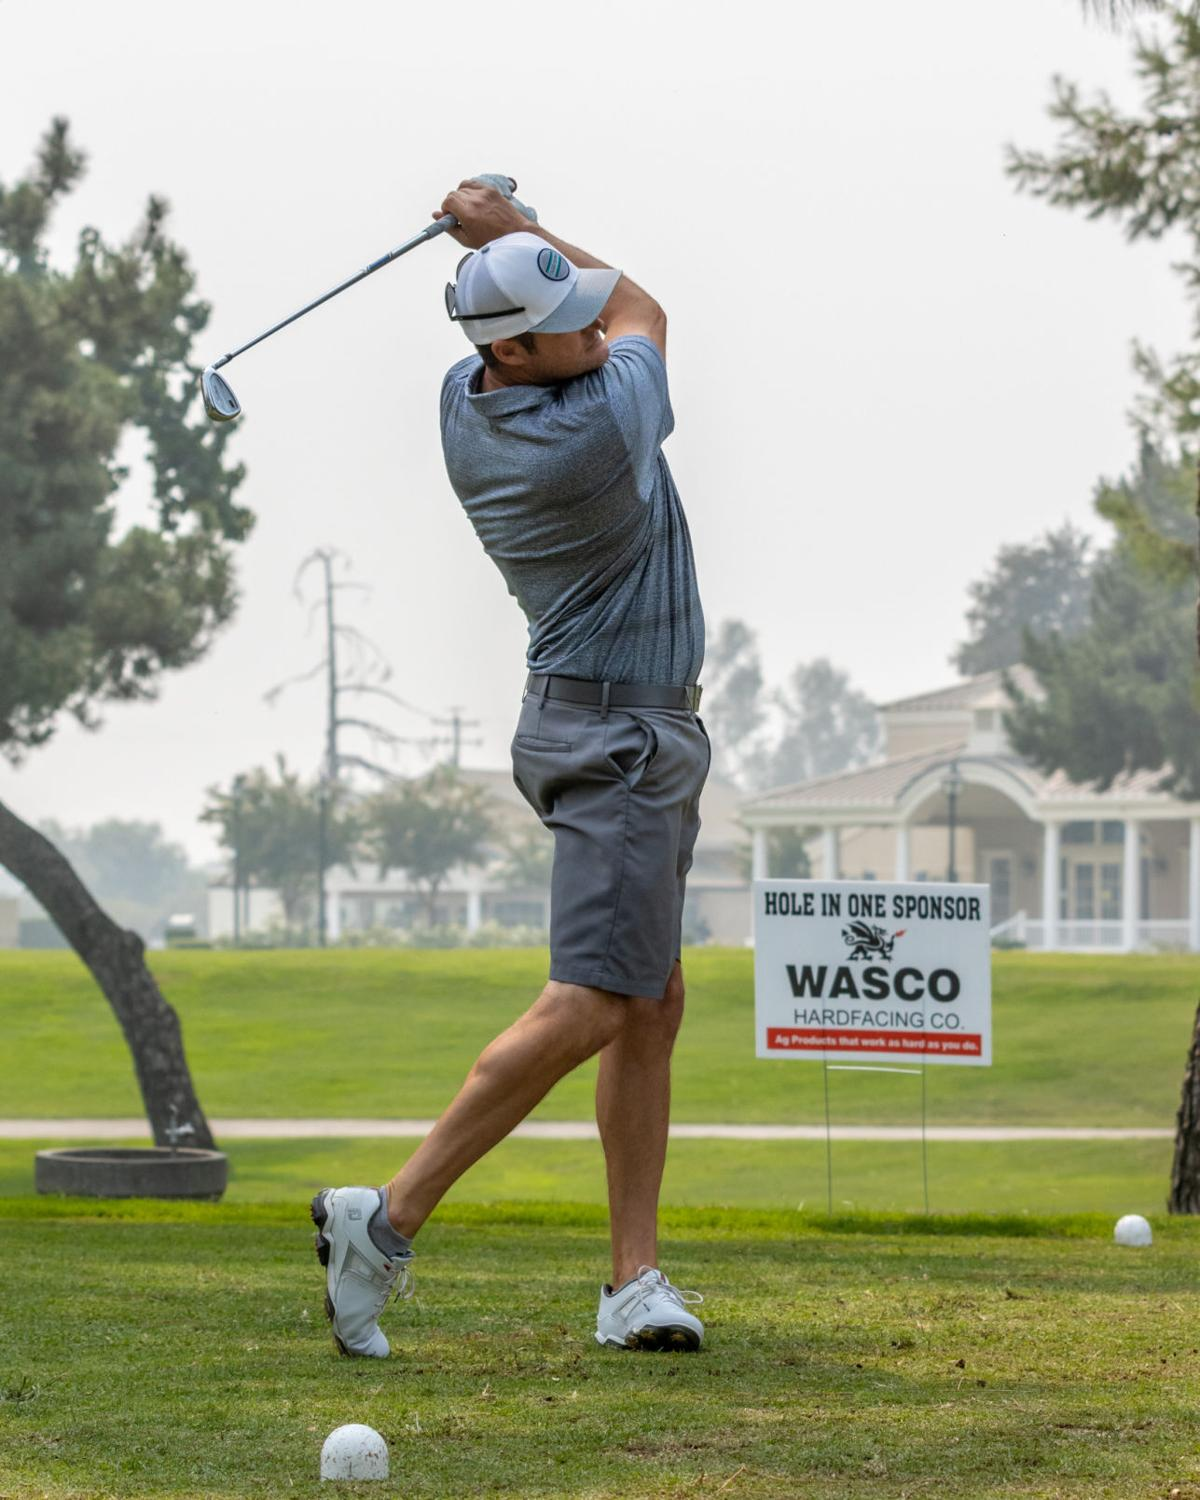 Rotary Club hosts golf tournament at Kings Country Club